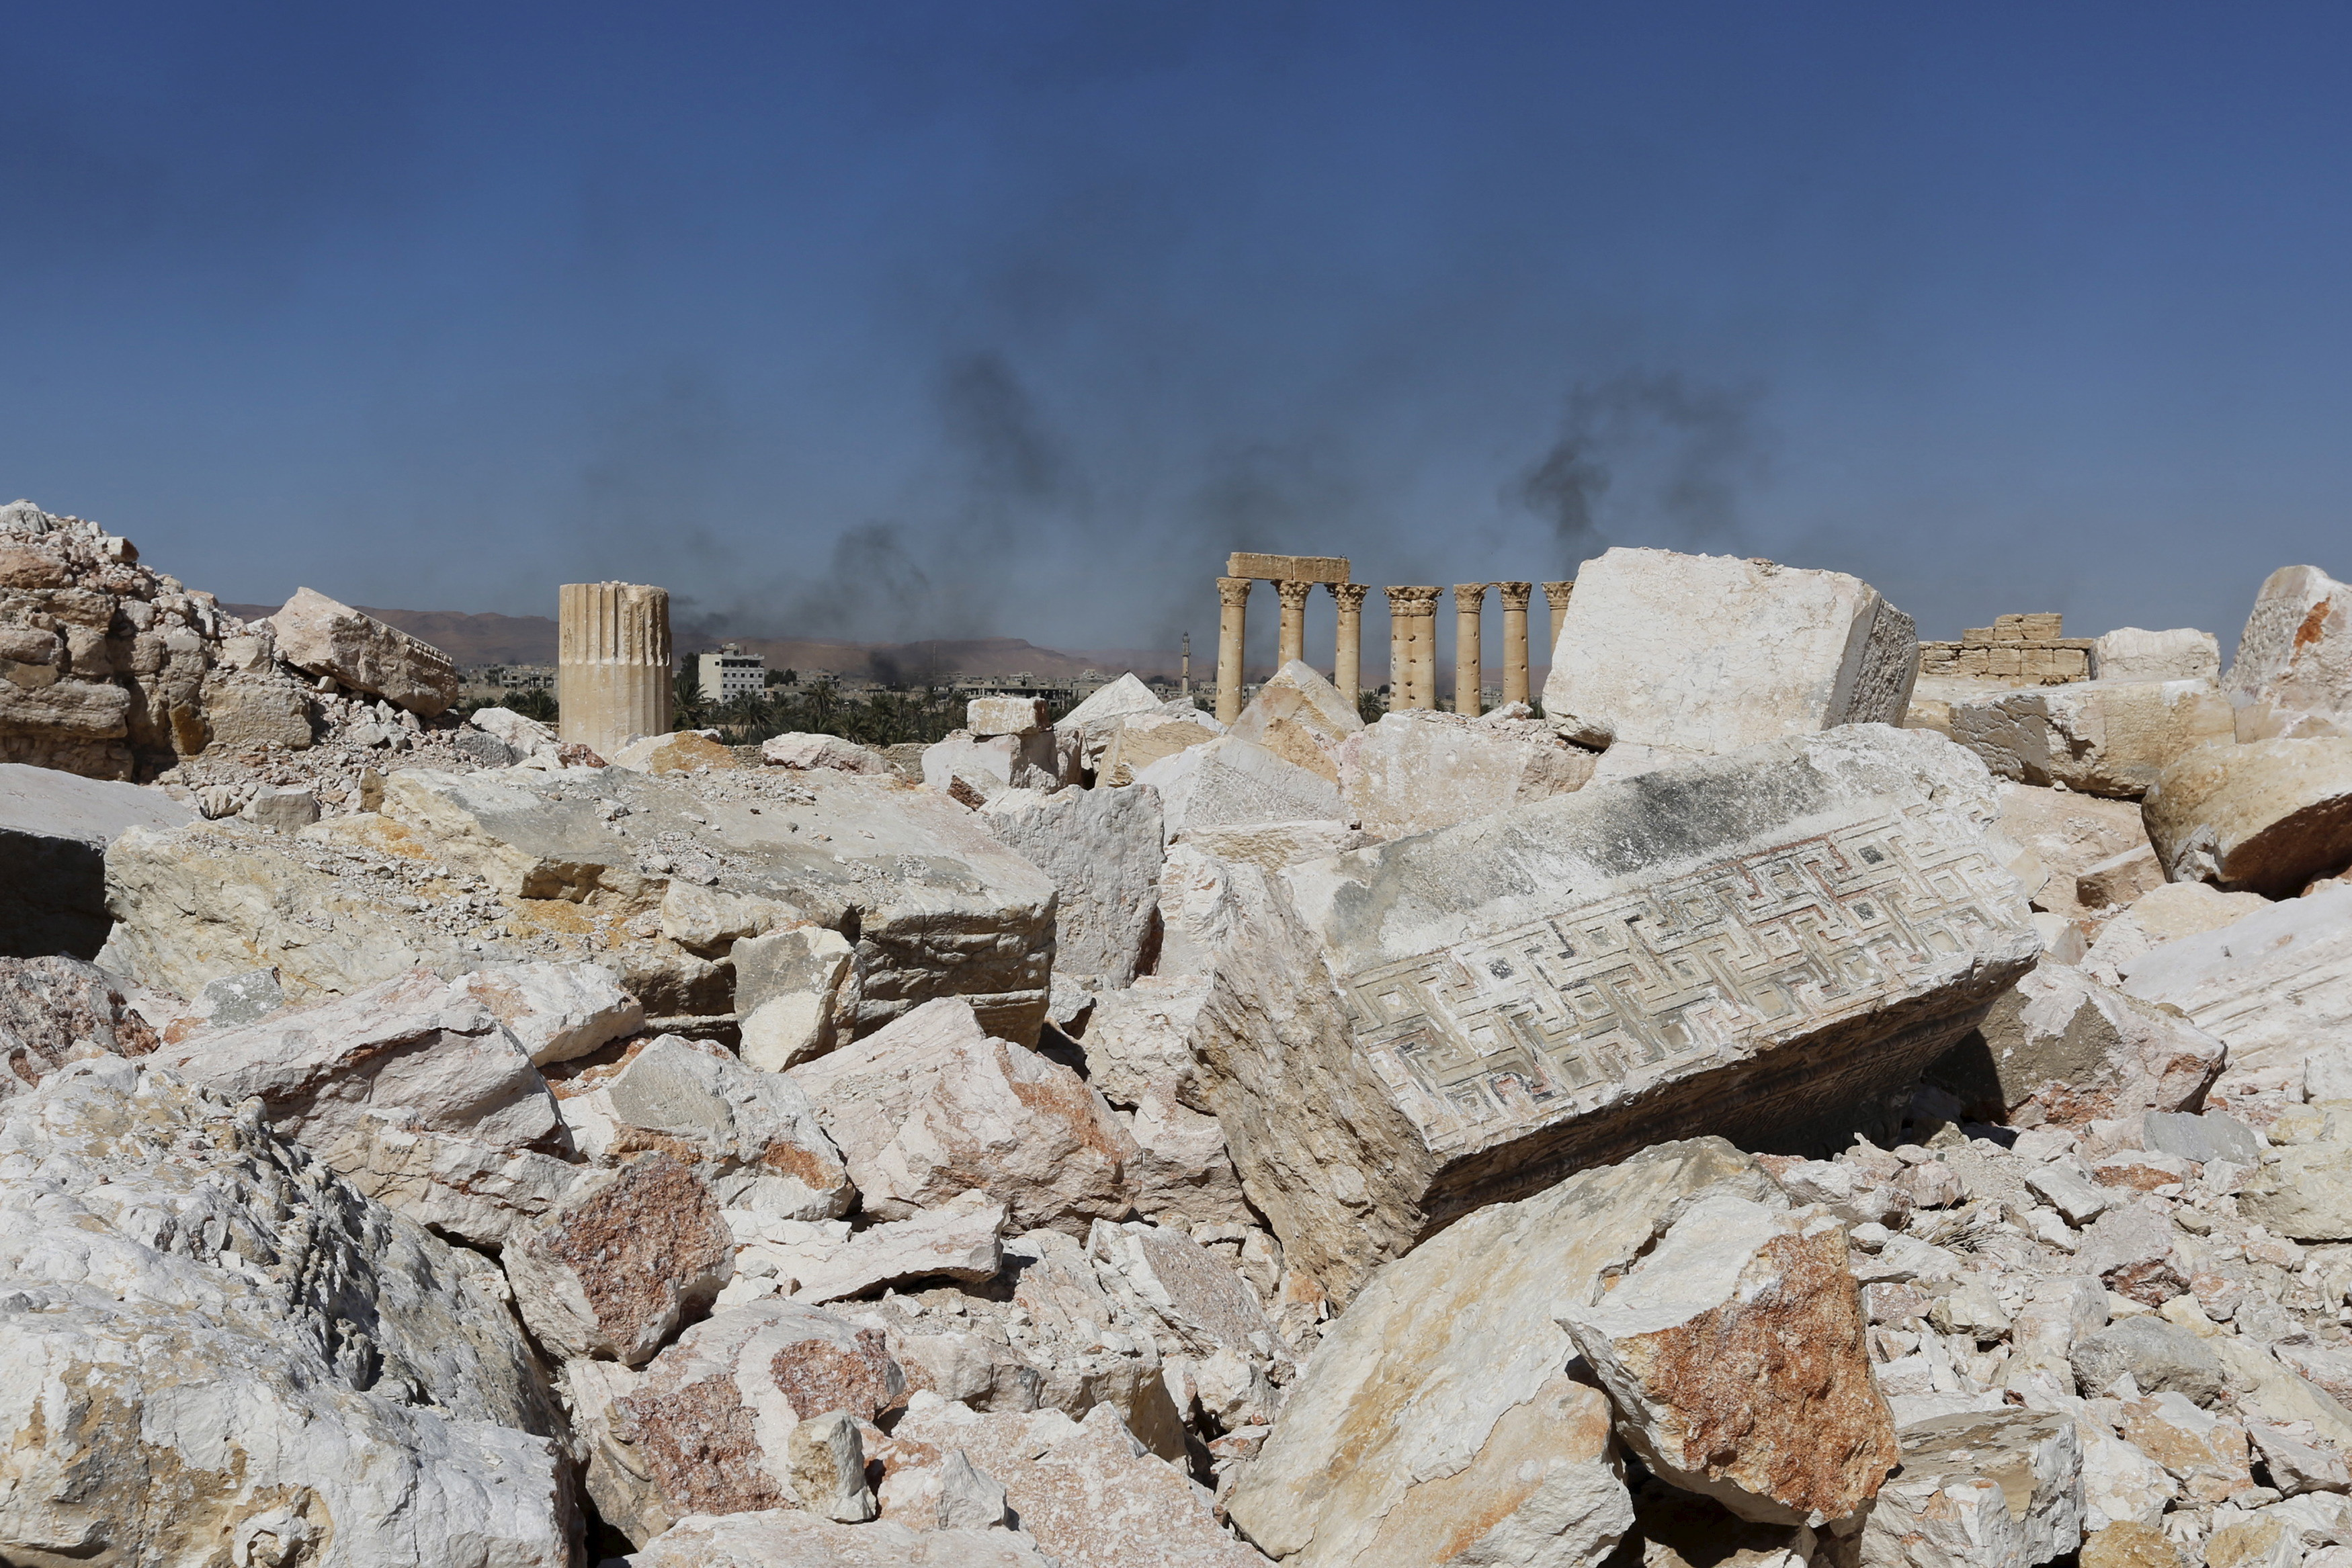 Smoke rises from the modern city as seen from the historic city of Palmyra, in Homs Governorate, Syria